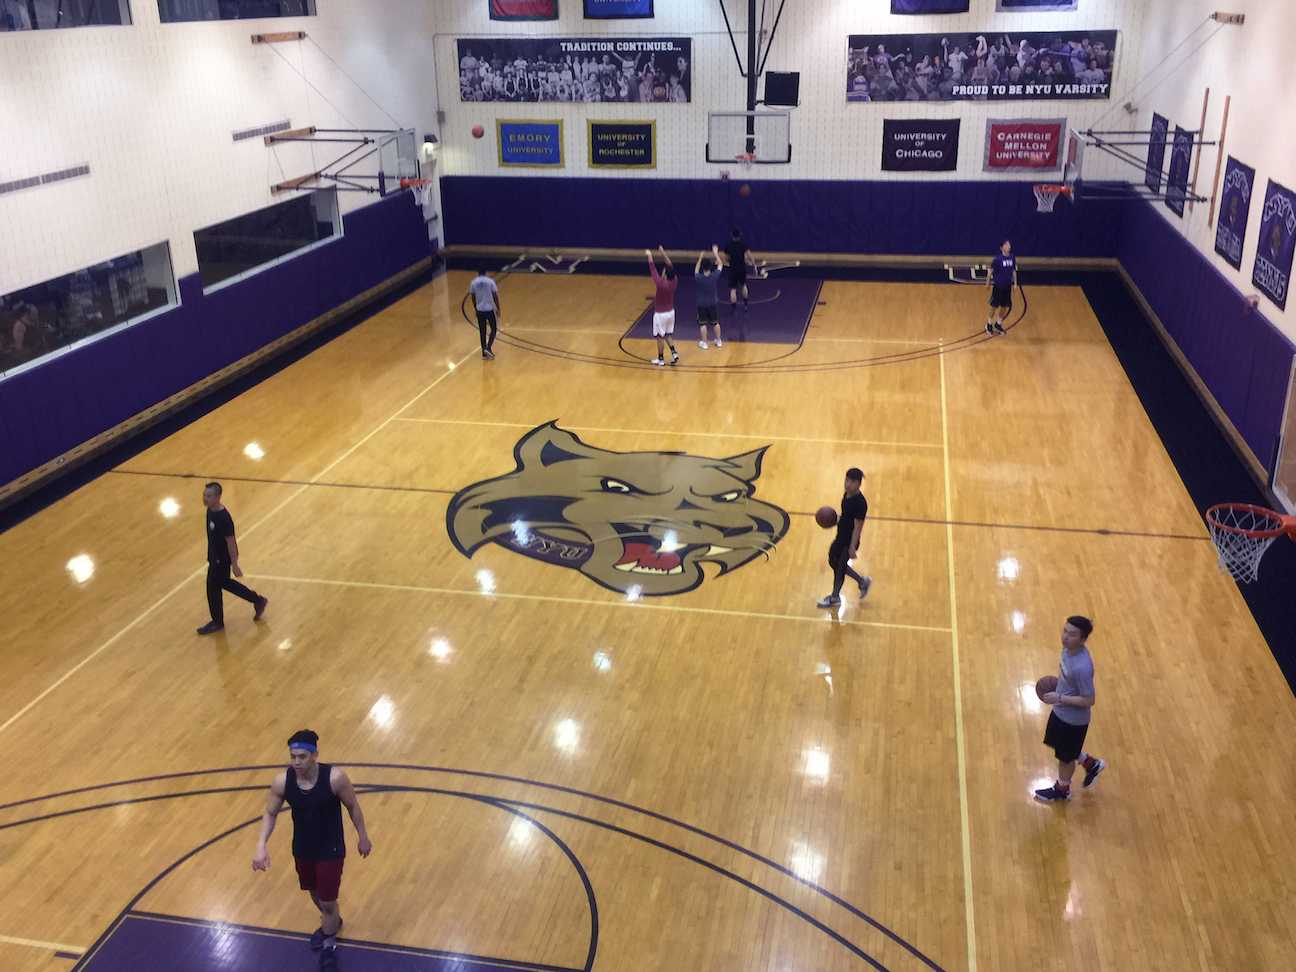 Although NYU has a division III athletic program, it can be the perfect place for student athletes, as there is a strong focus on academics.